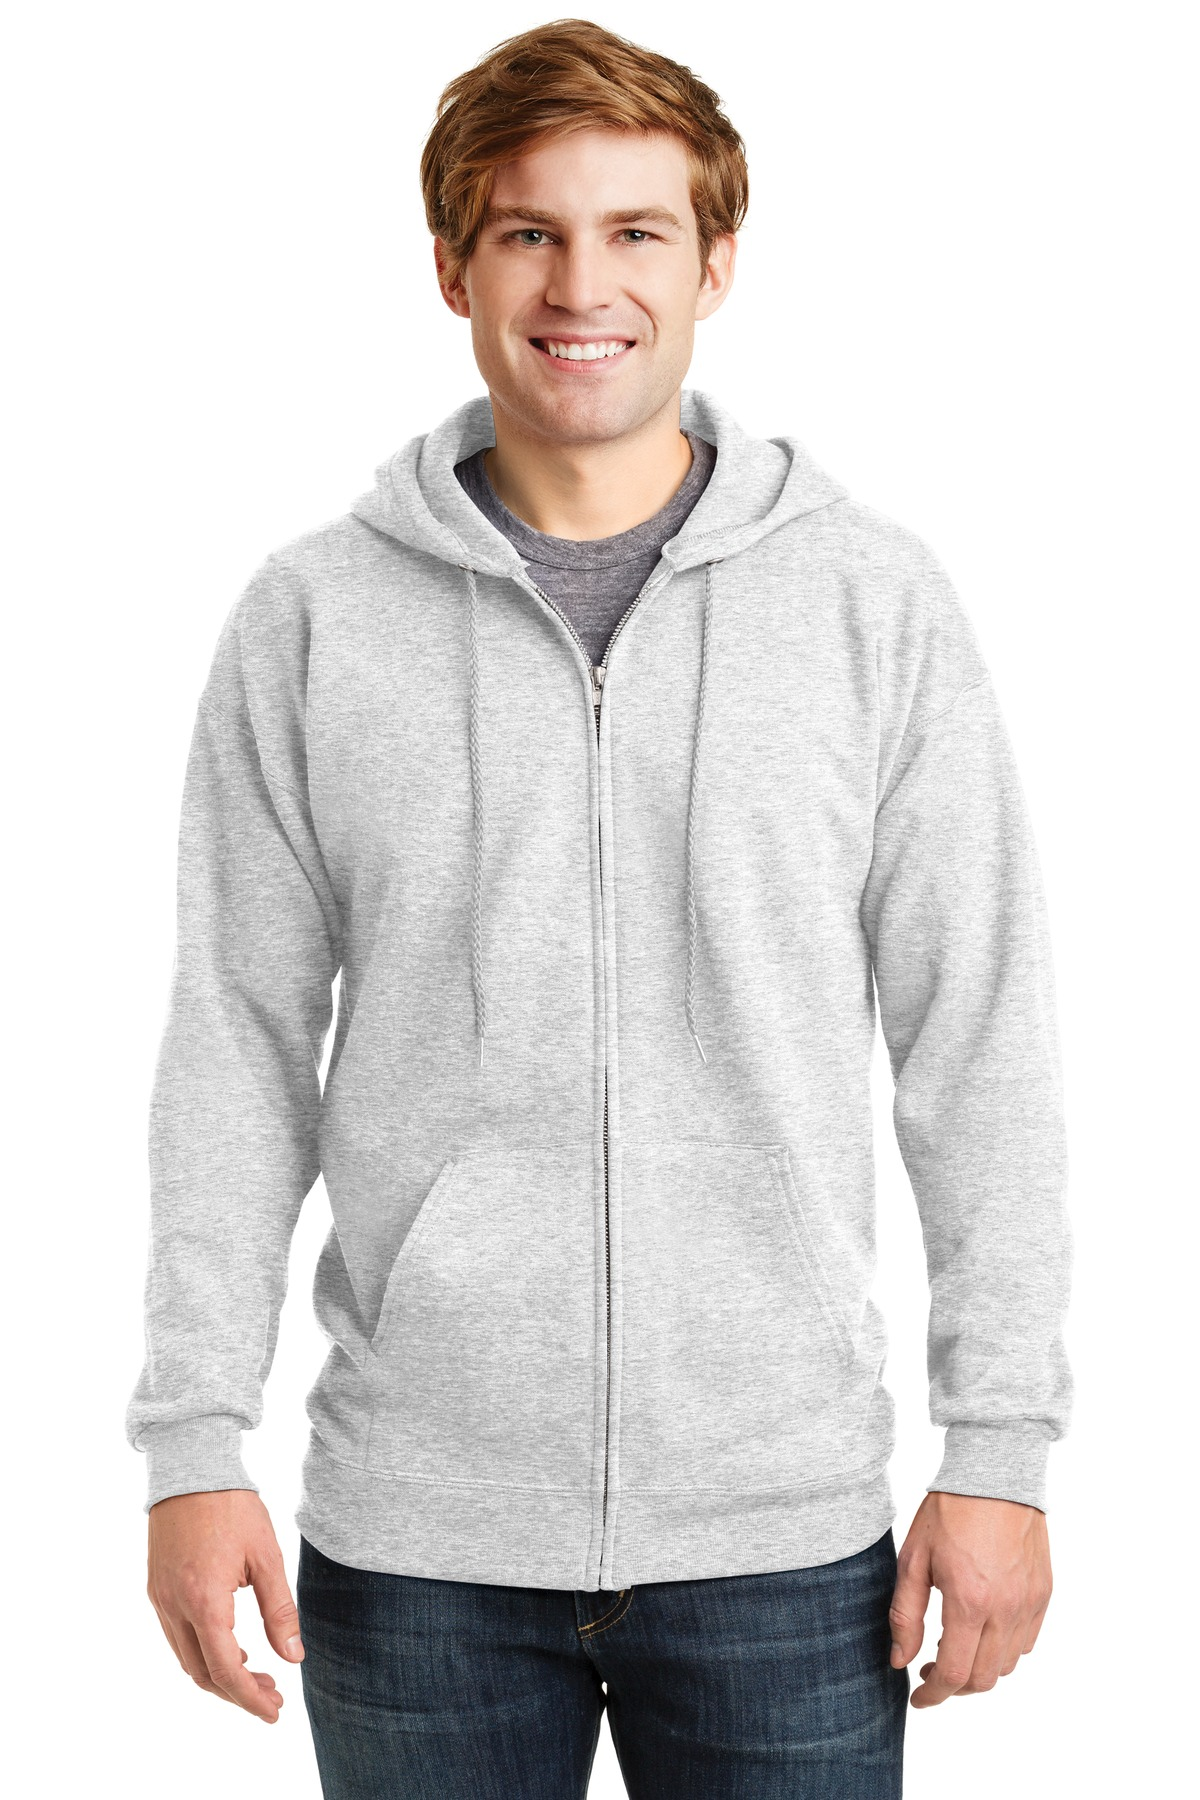 Hanes ®  Ultimate Cotton ®  - Full-Zip Hooded Sweatshirt.  F283 - Ash